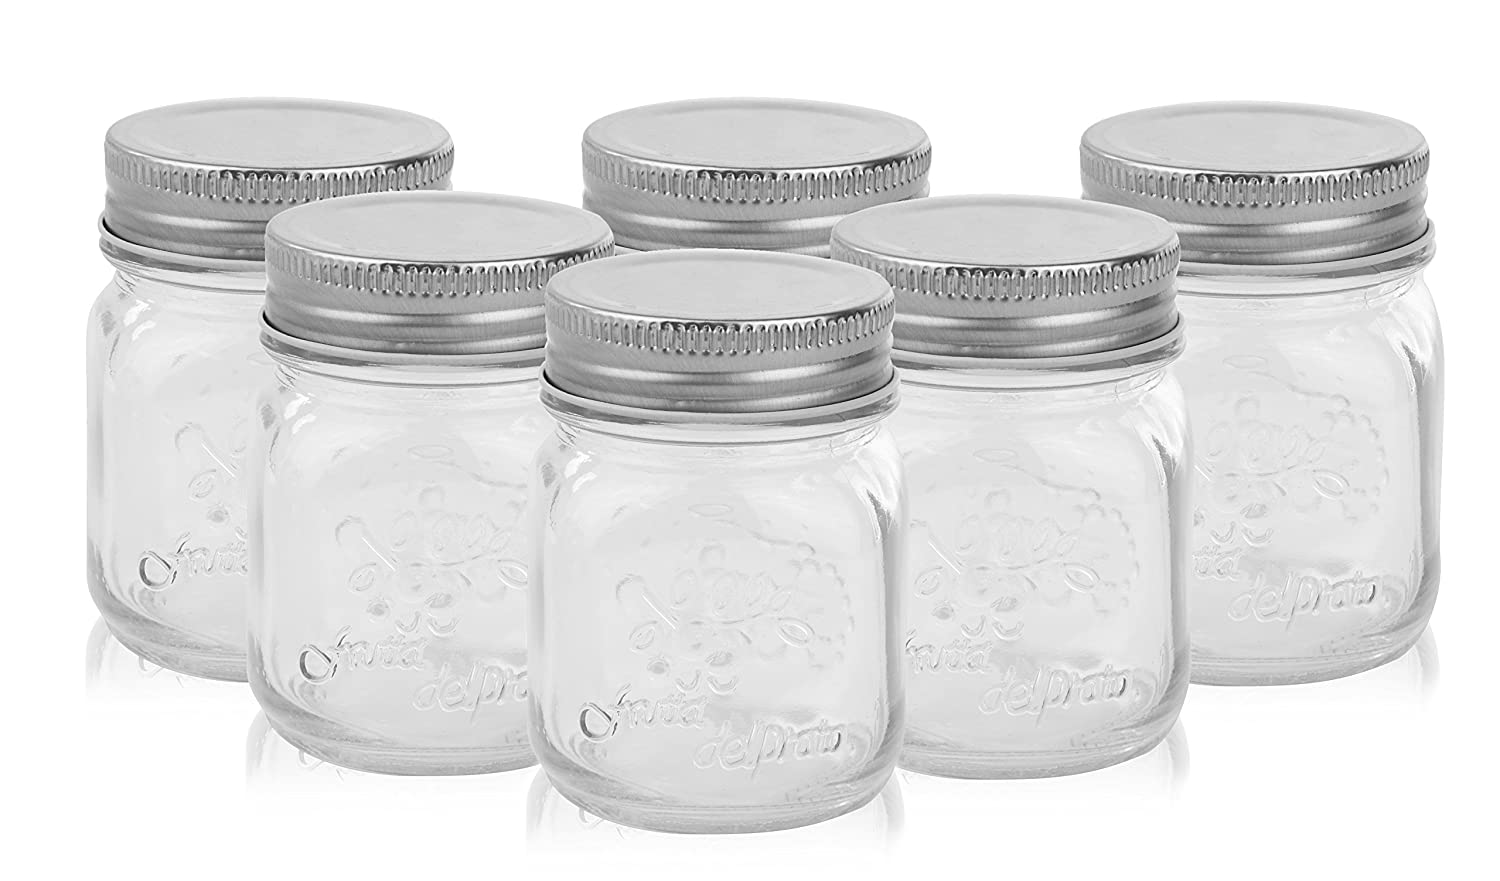 Amazon.com: Golden Spoon Mason Jars, With Regular Lids, and Lids for ...